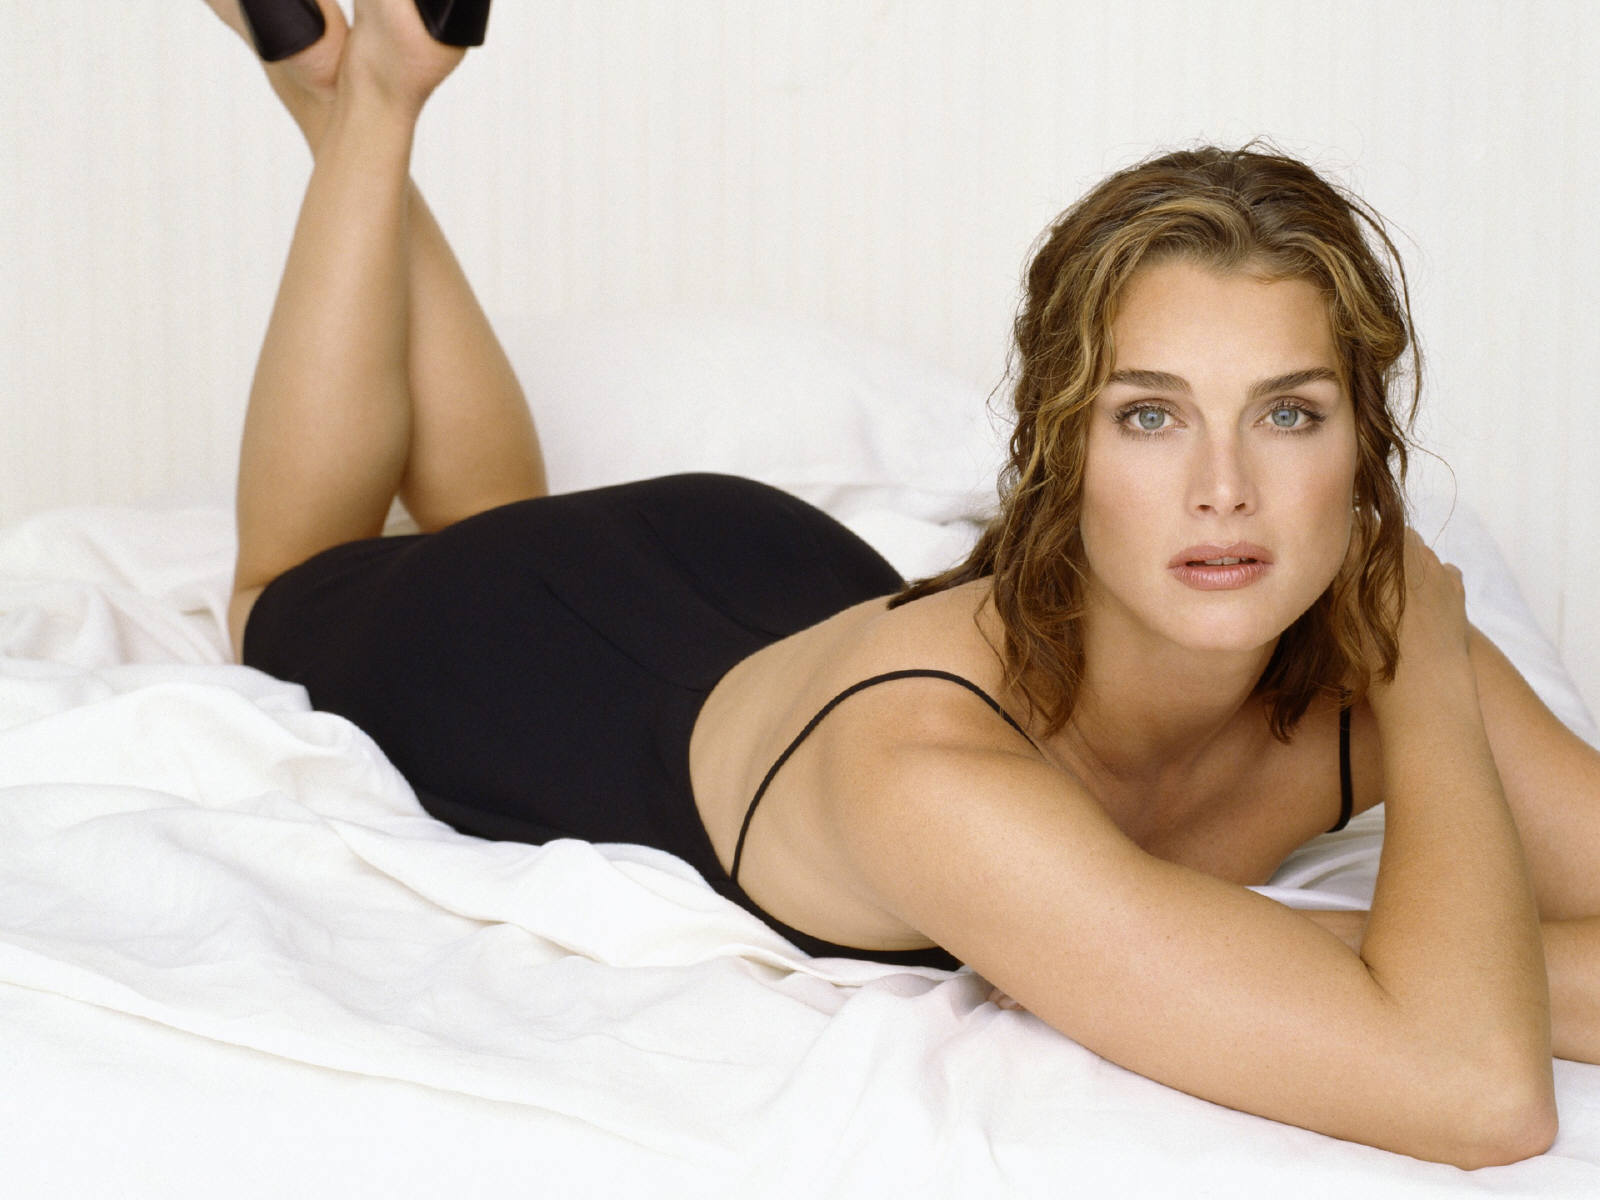 sexy brooke shields wallpaper 54874